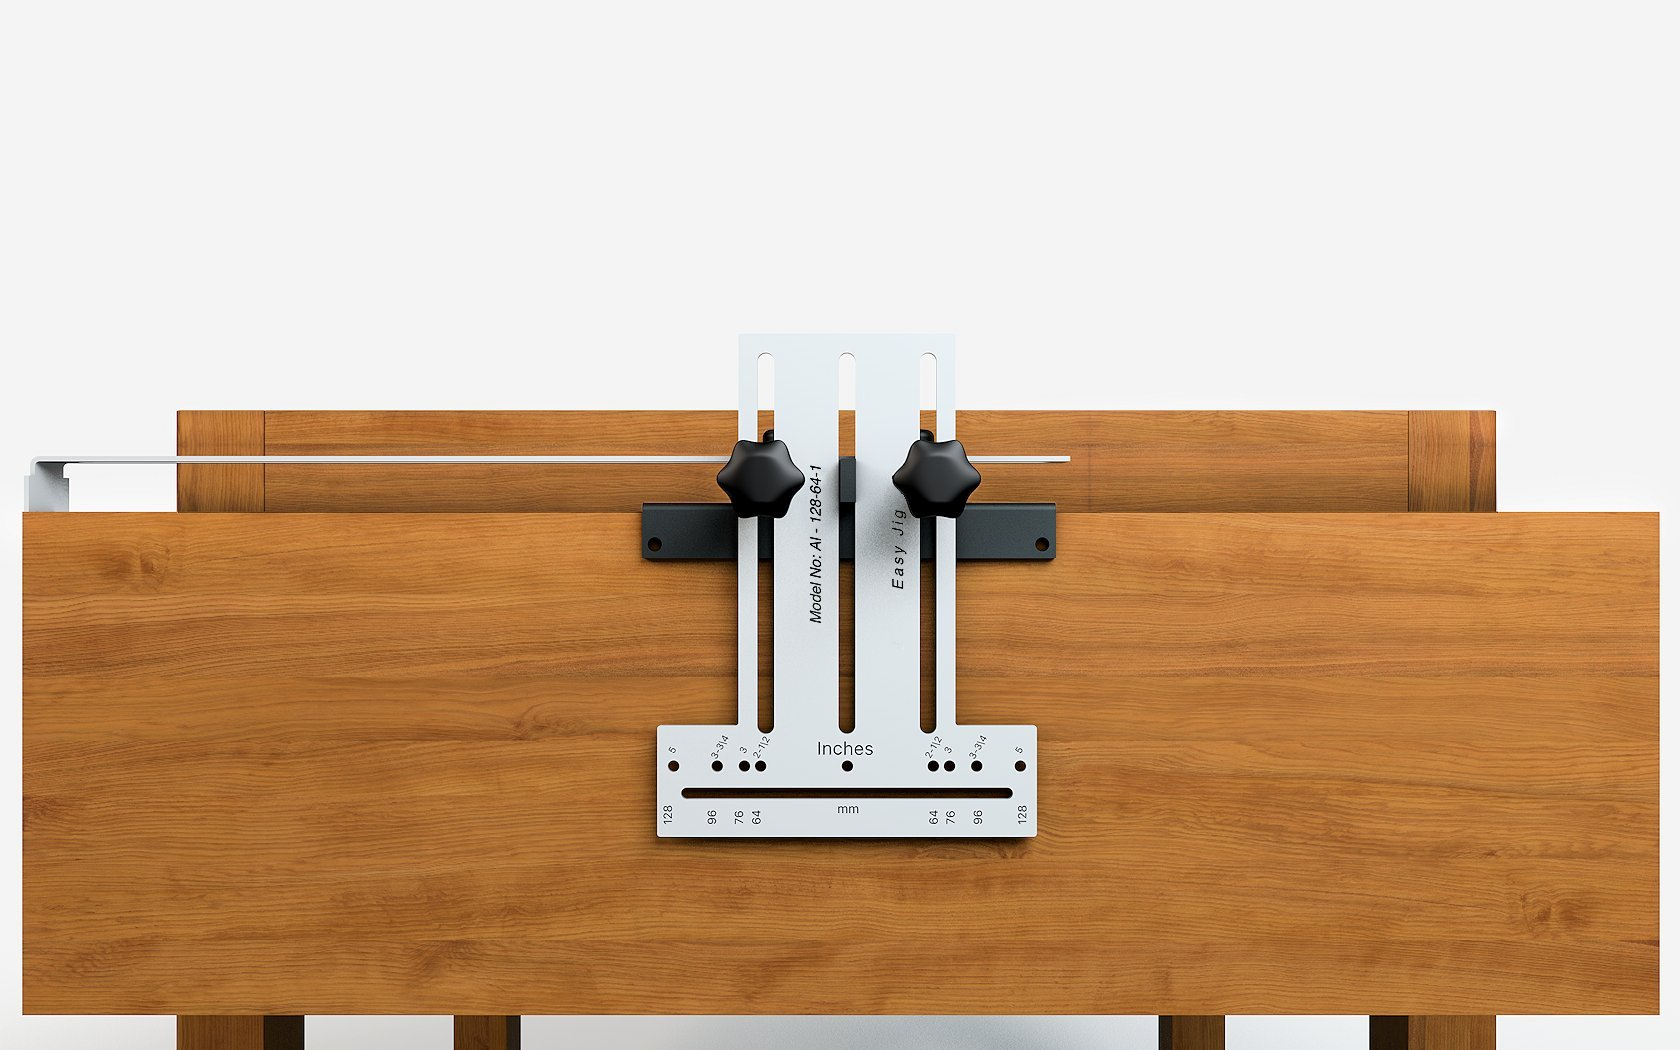 EasyJig 128 Template Jig for easy installation of Kitchen Cabinet Pulls Handles knobs for Doors and Drawers